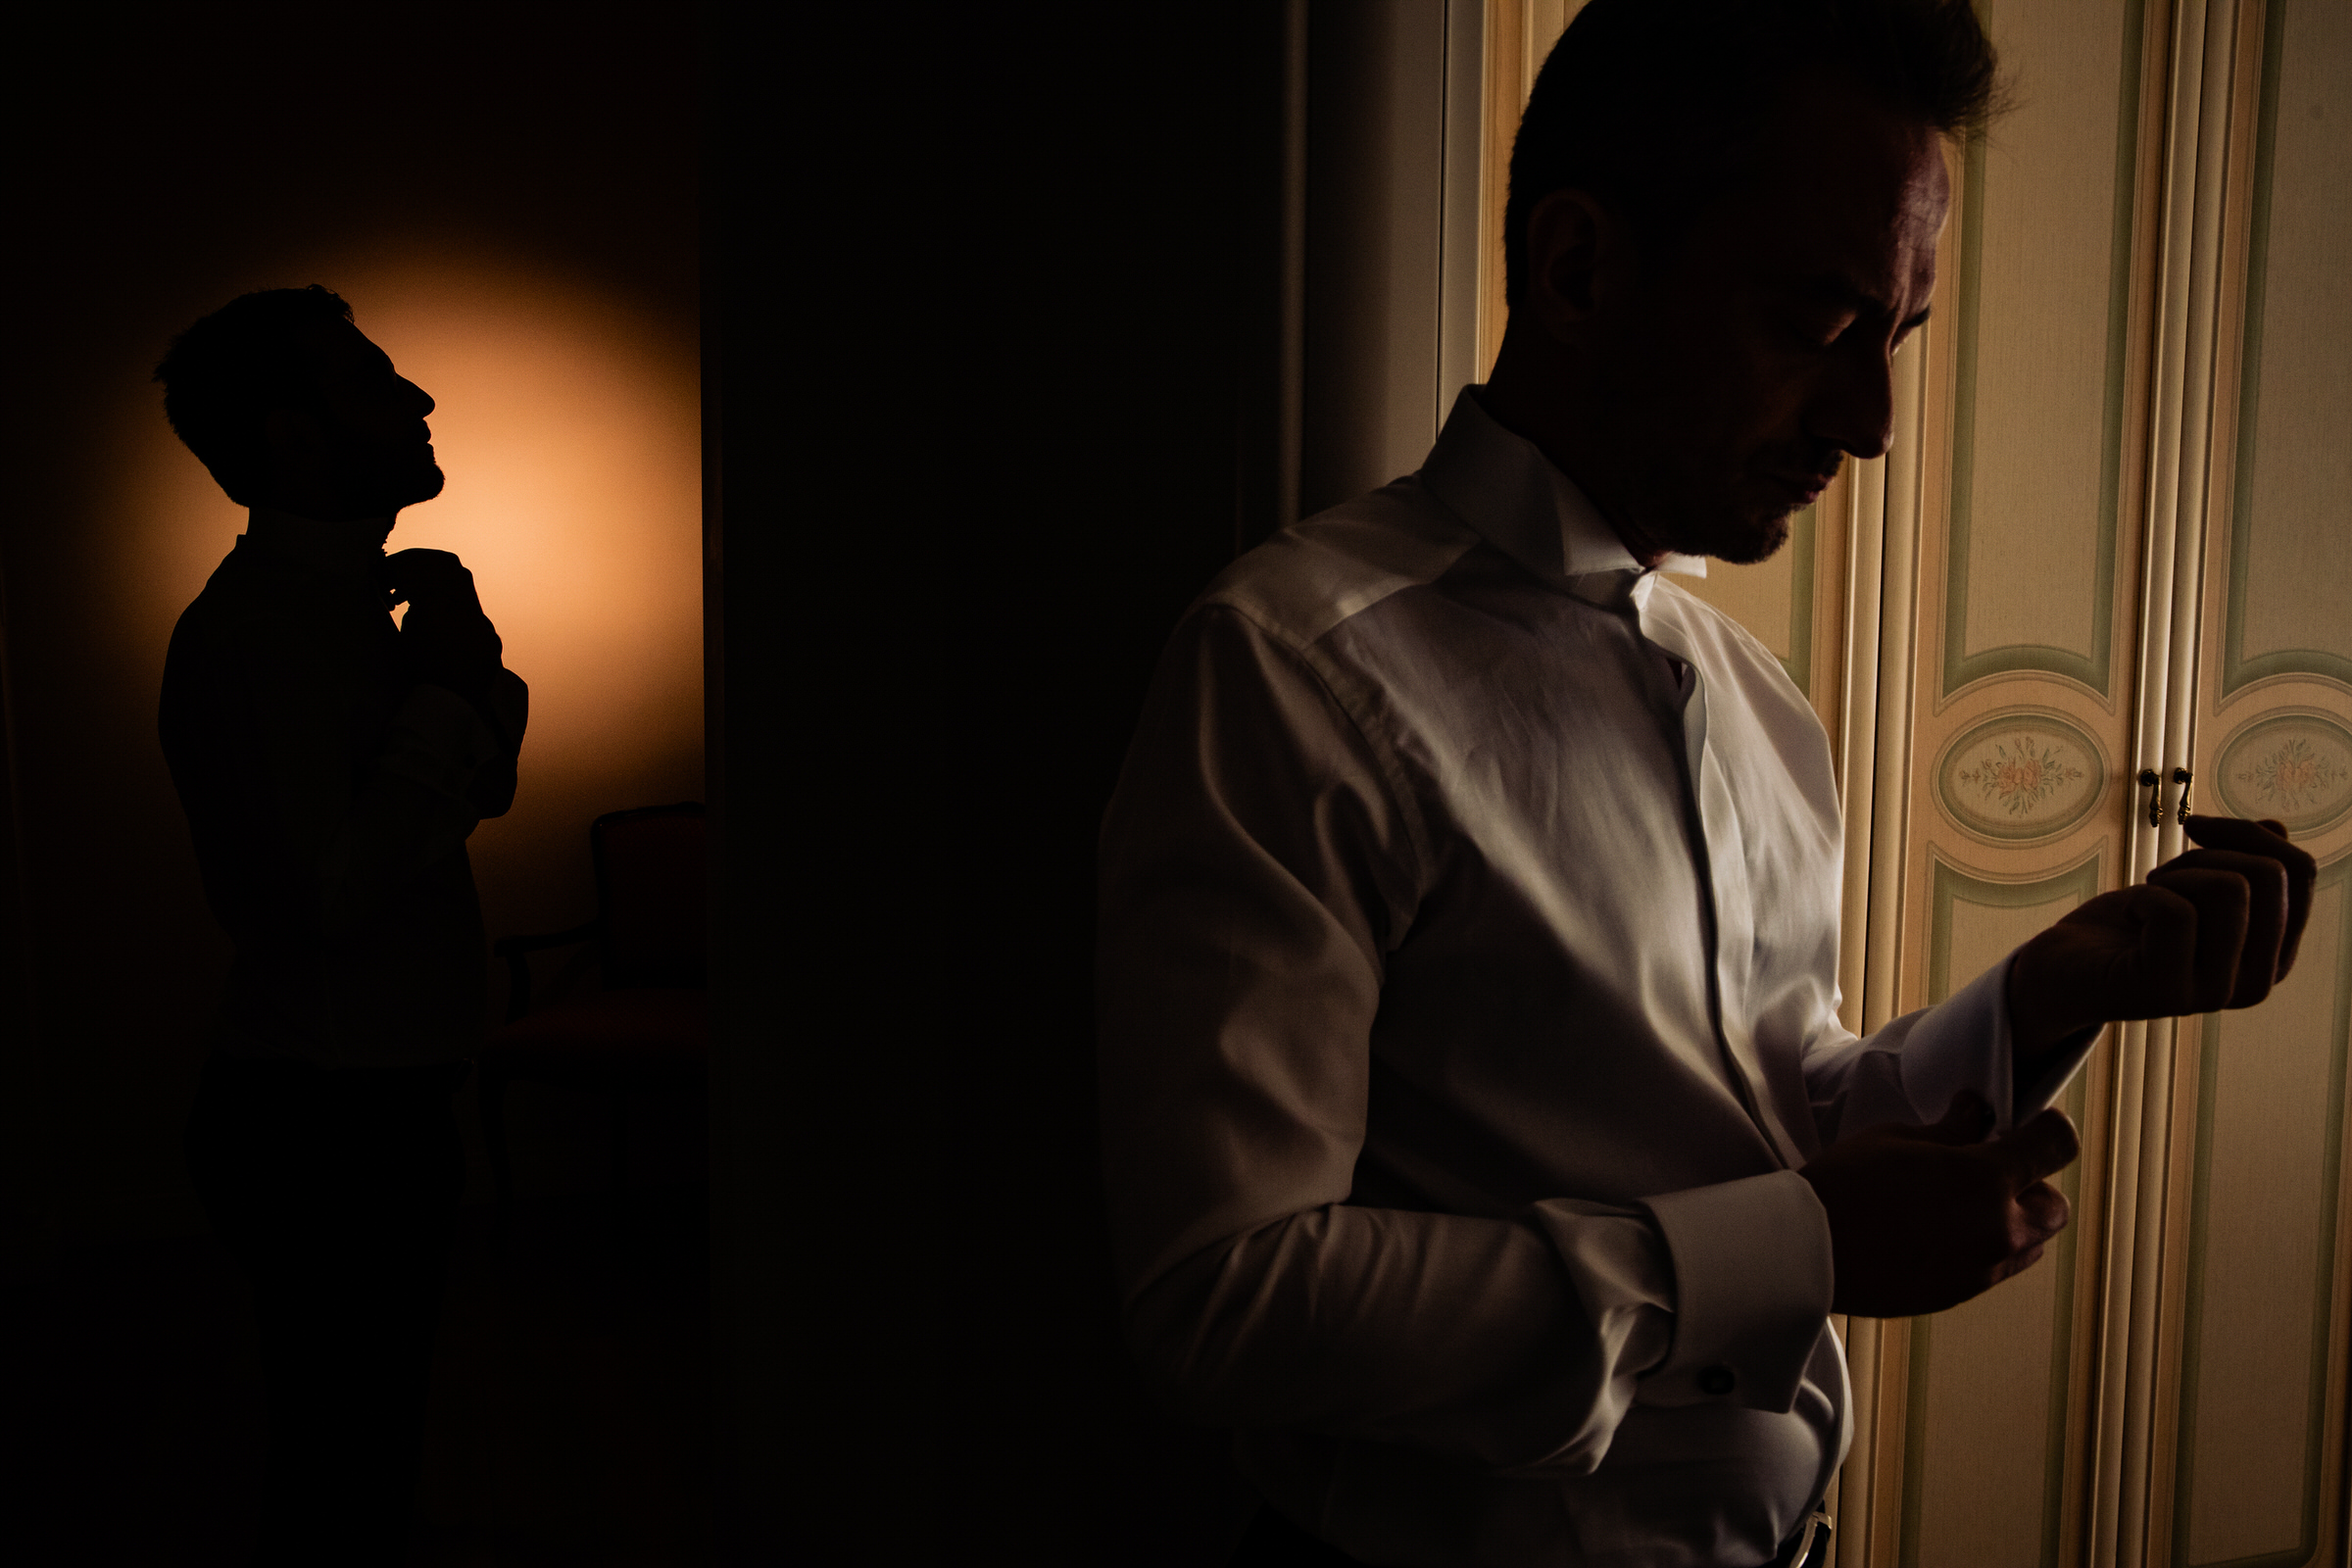 Grooms getting ready in shadow and silhouette - photo by Luca + Marta Gallizio Photography